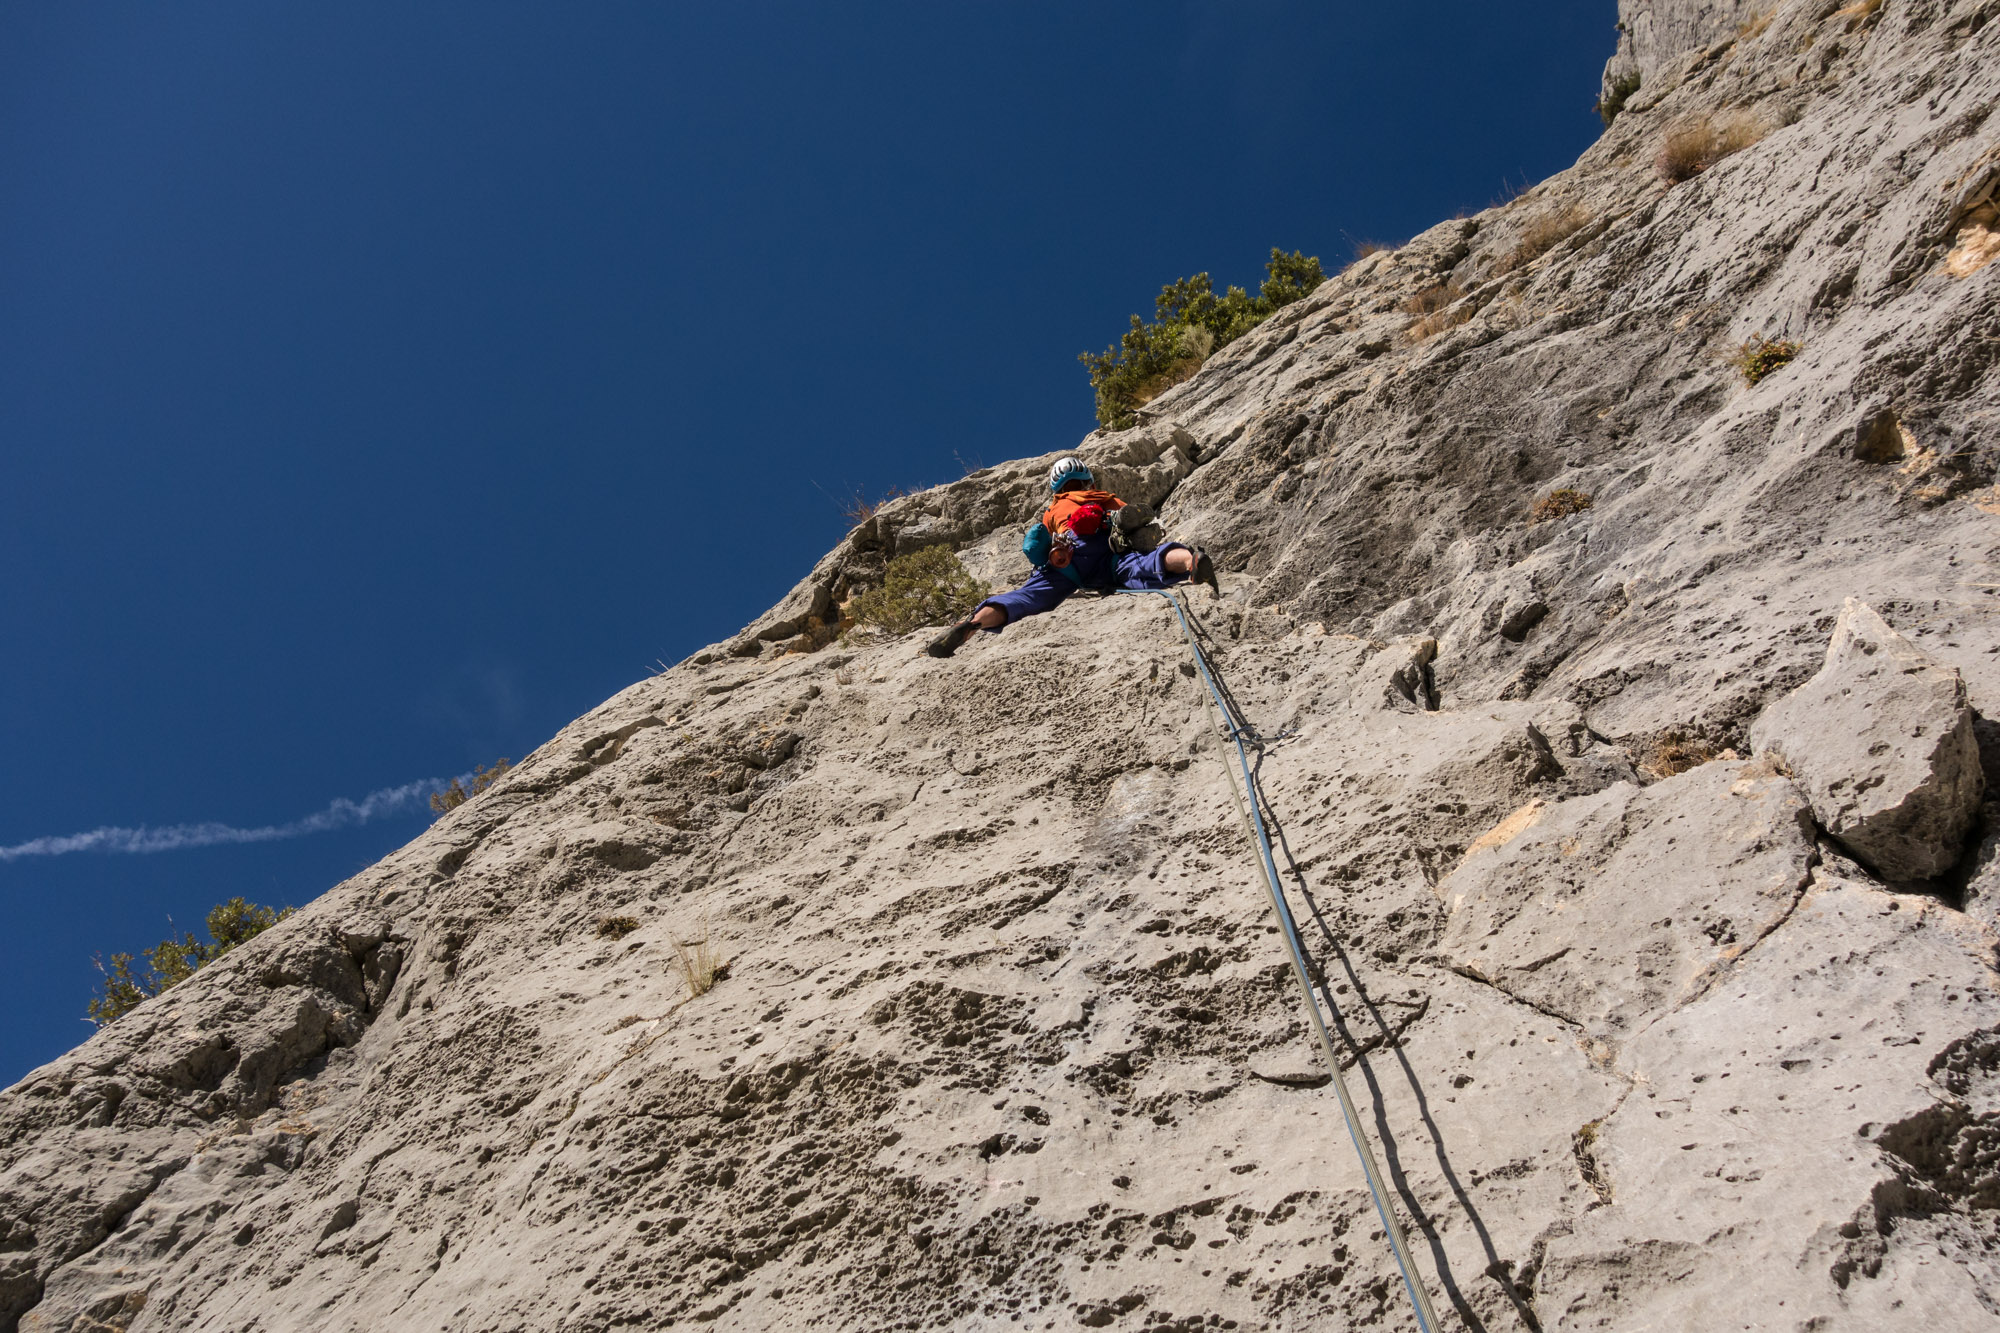 Immaculate rock, beautiful climbing and blazing sunshine - getting into the swing of things on the second pitch of Dalles Grises